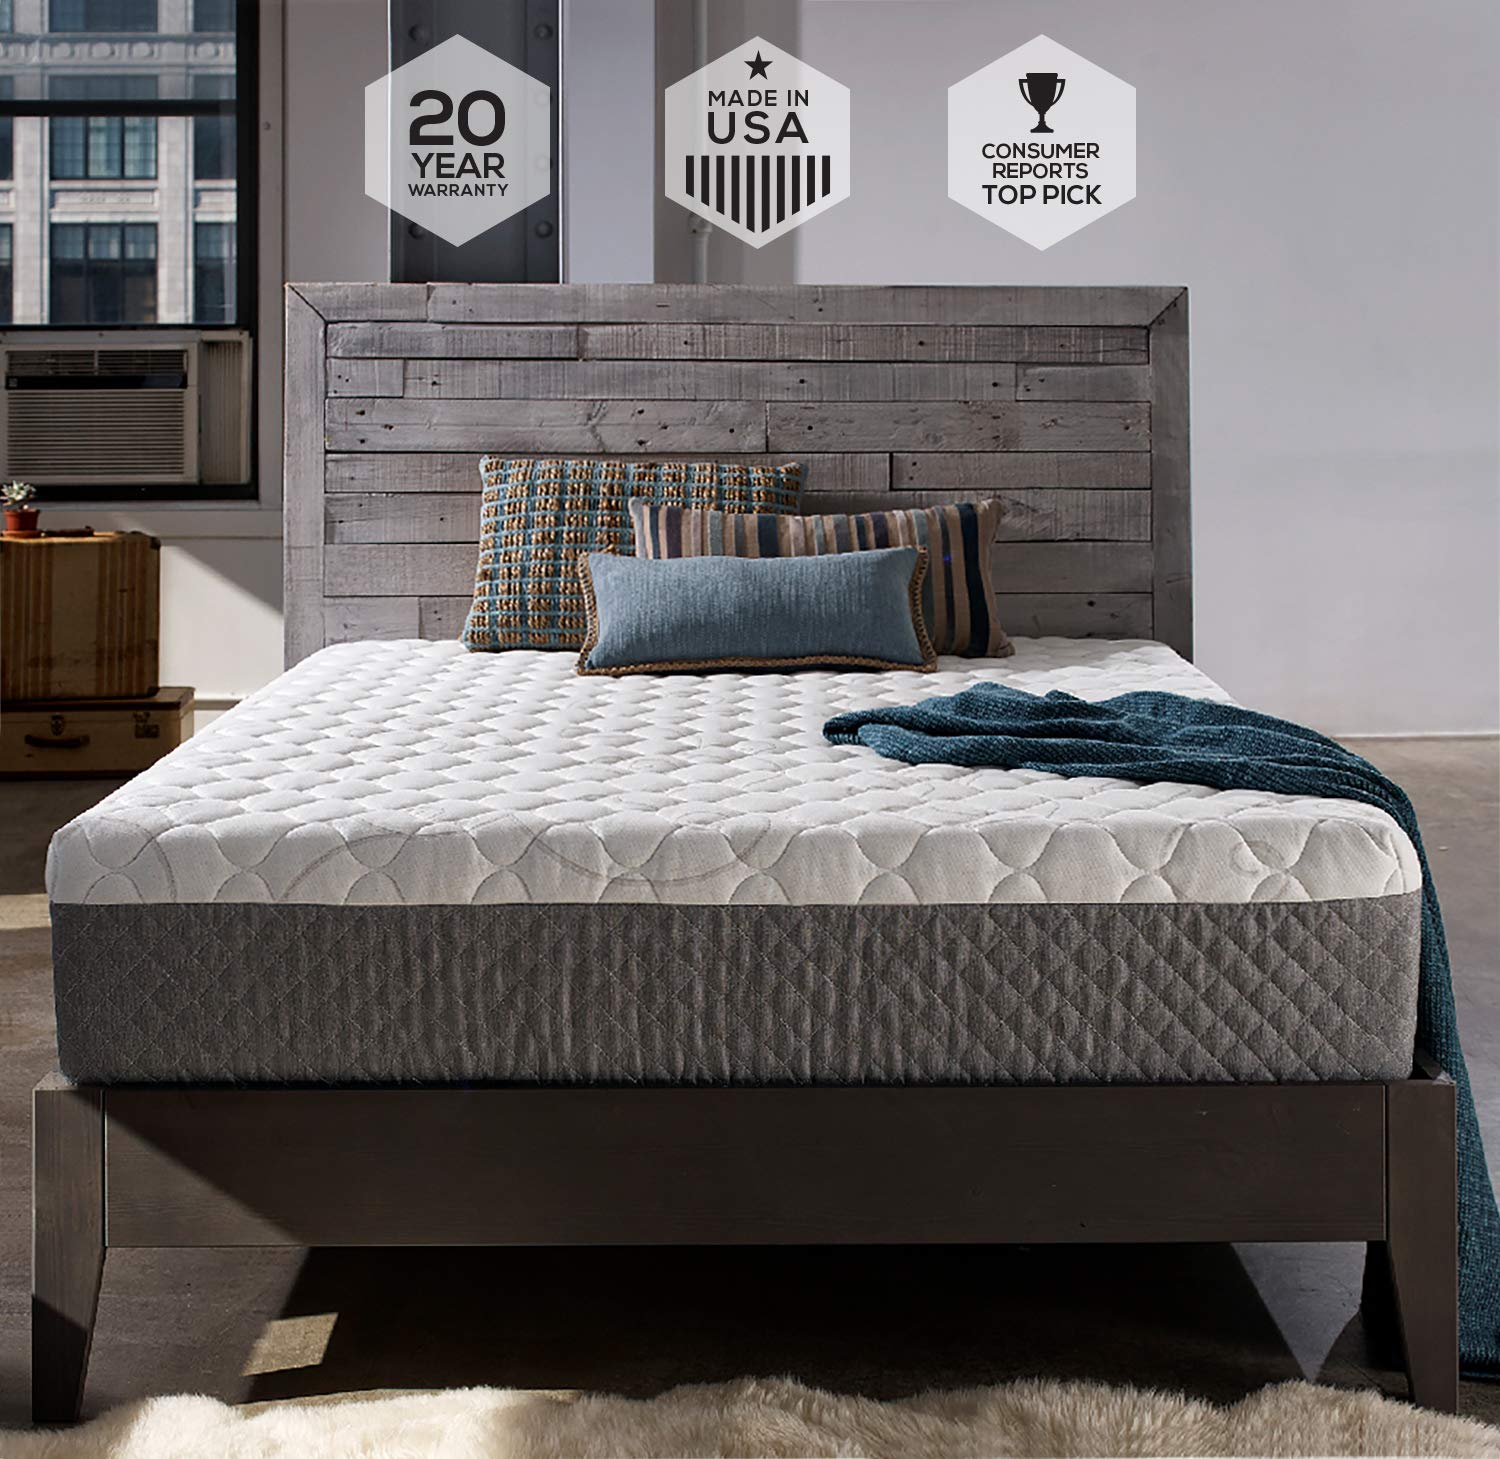 Sleep Innovations Taylor Mattress Review - Warranty